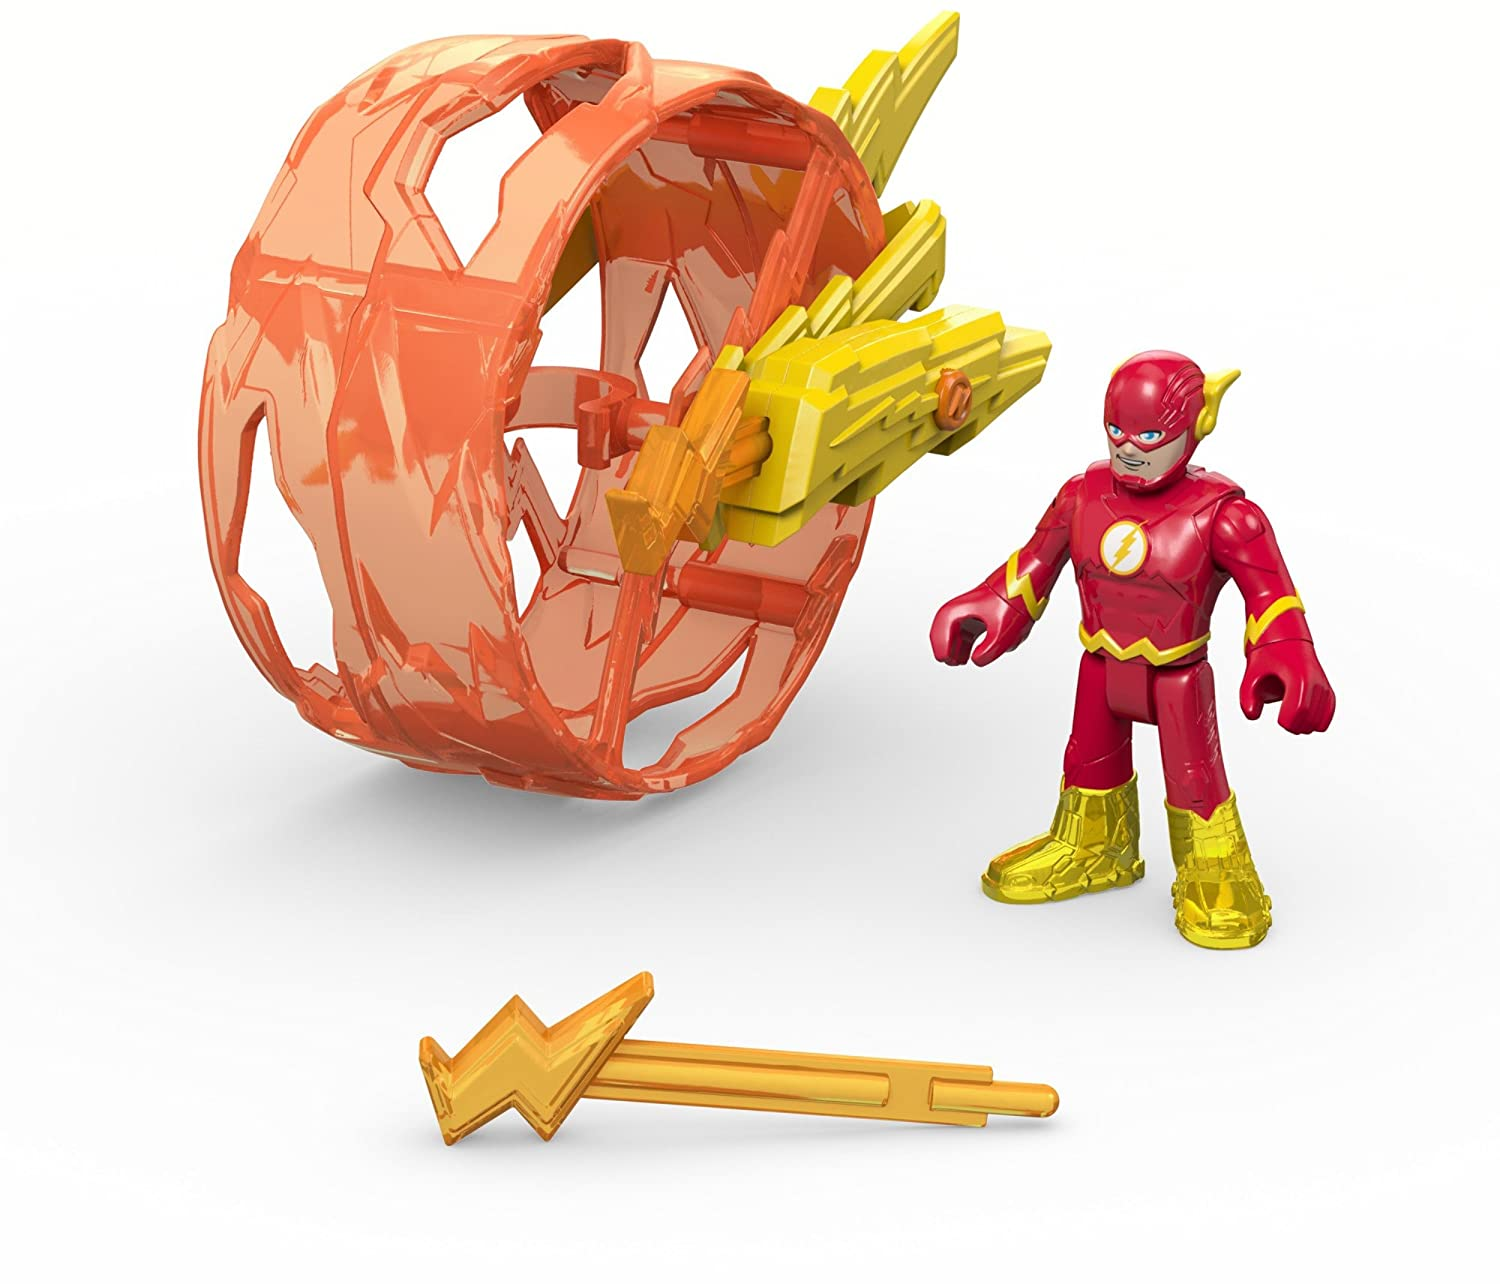 Fisher-Price Imaginext DC Super Friends Flash and Cycle Figure Pack Mattel DHT70